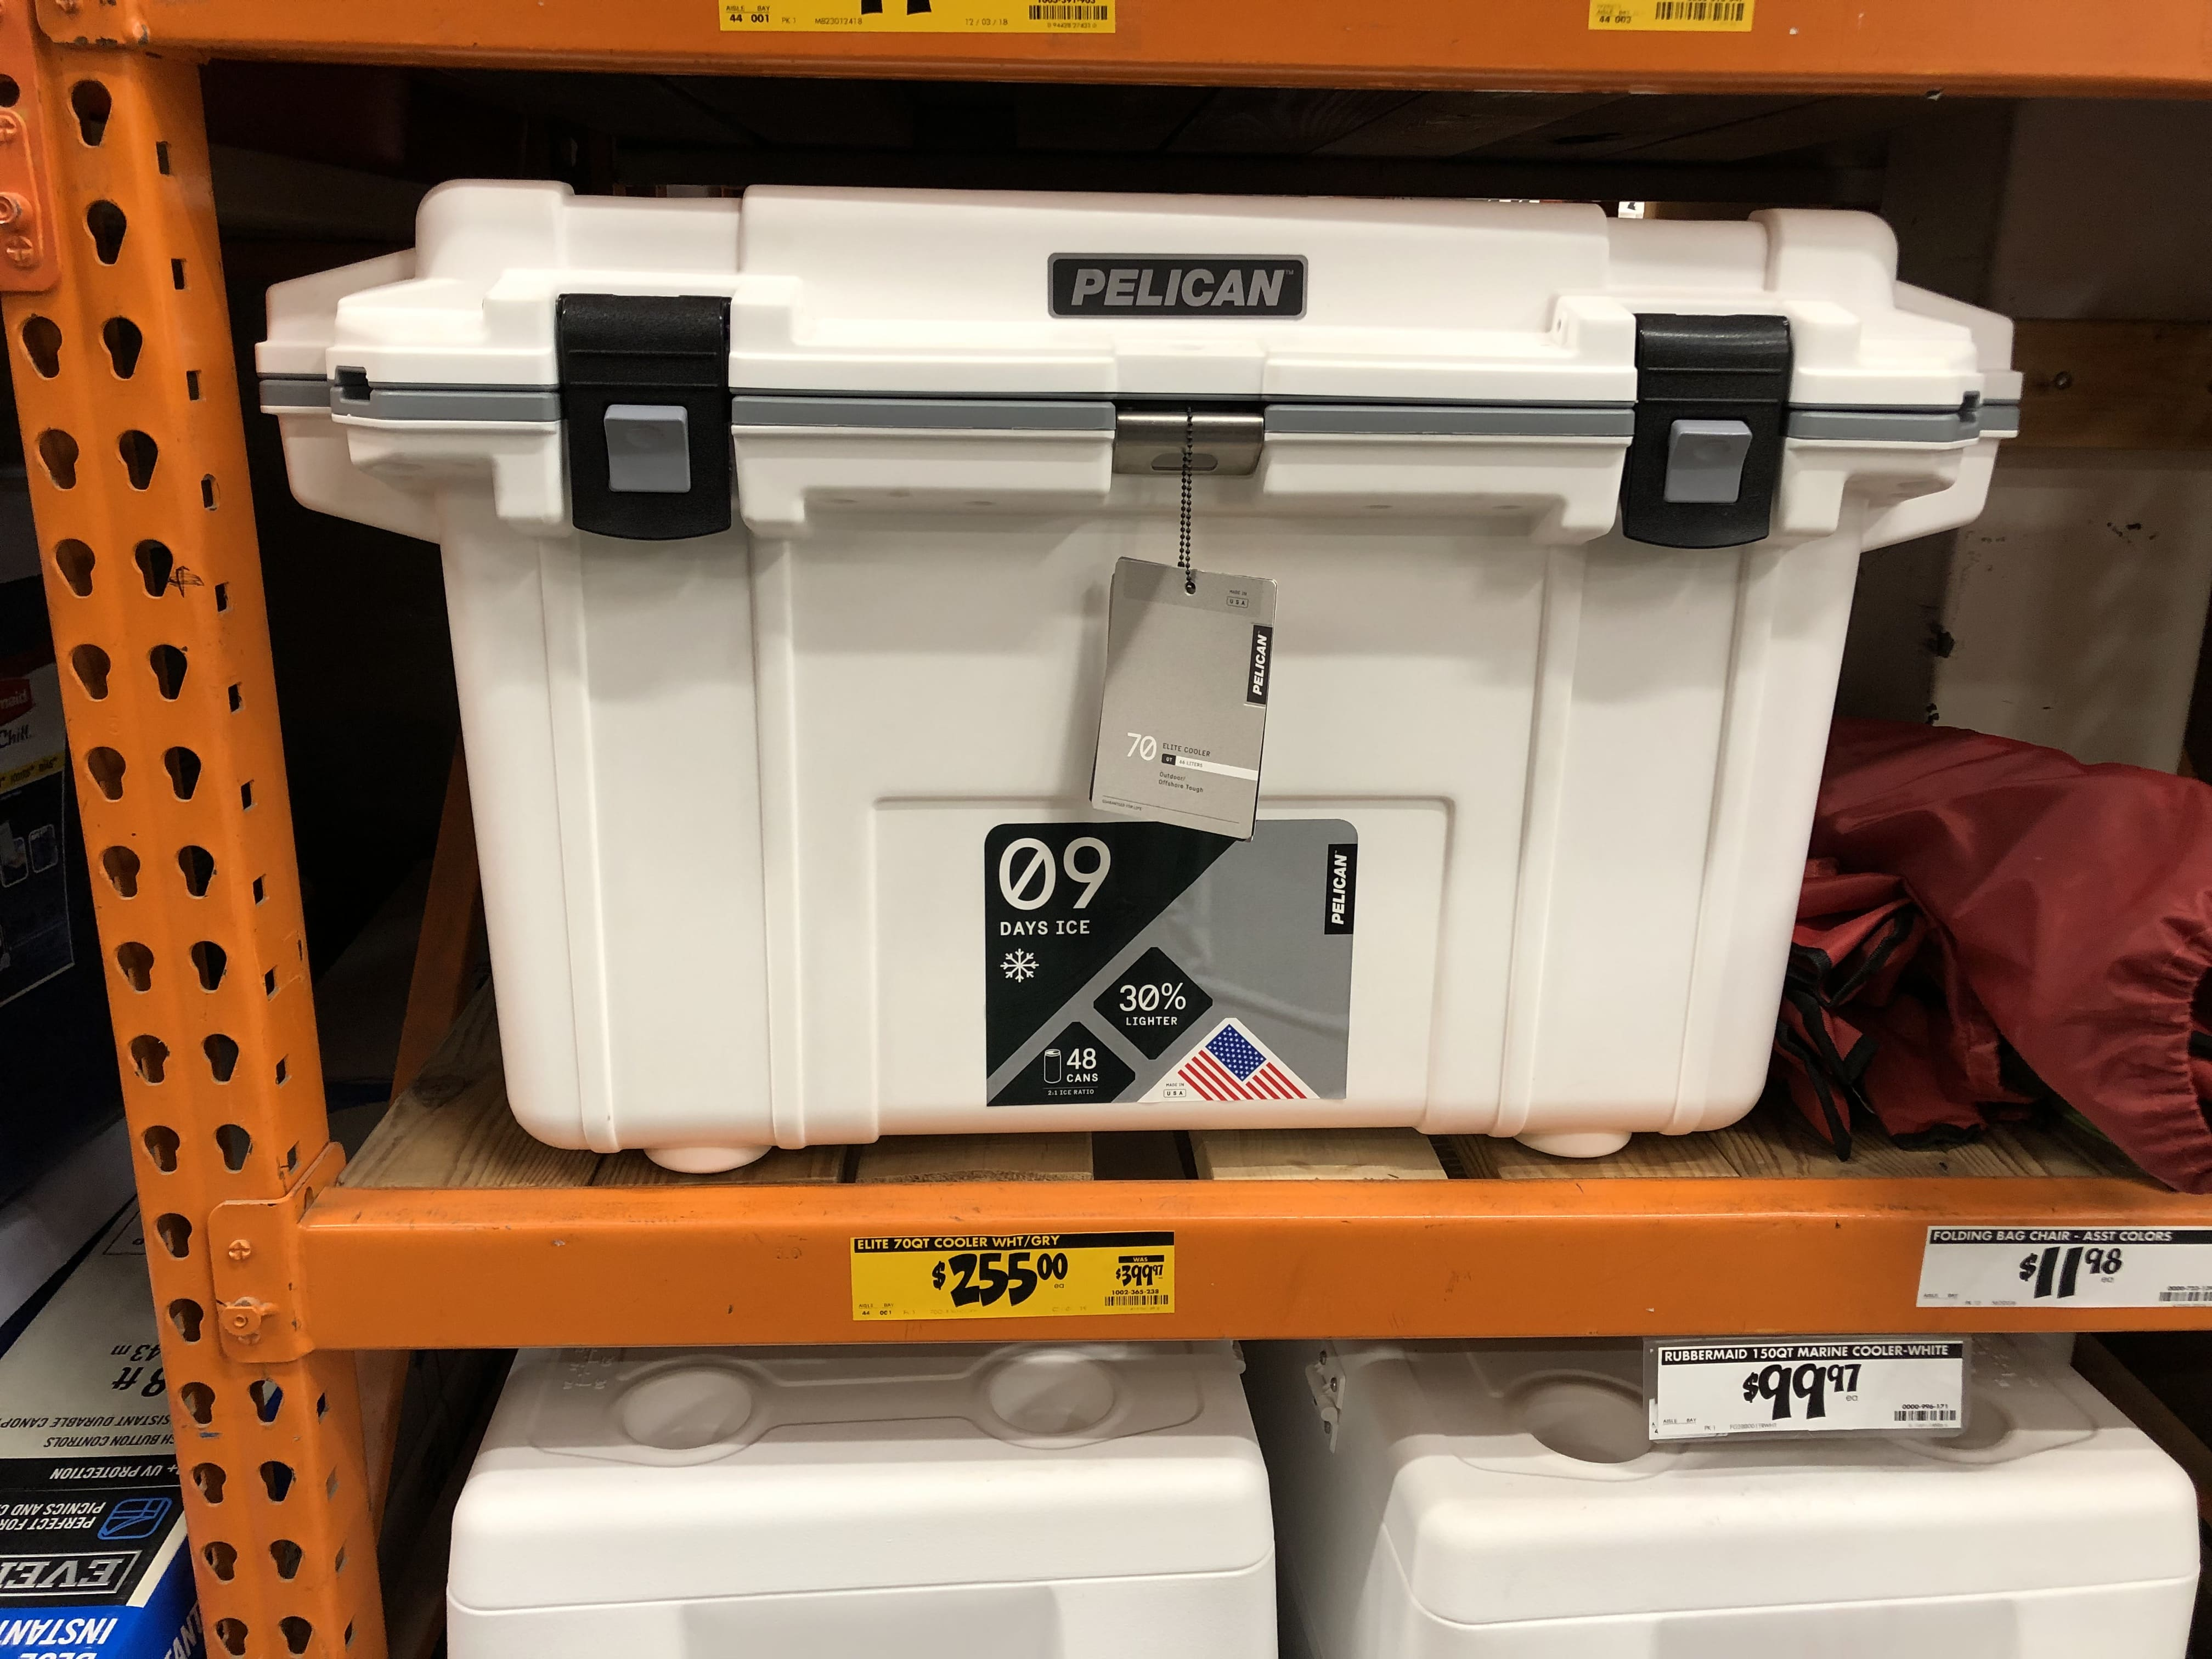 Home Clearance Pelican Roto Molded 70qt Cooler 225 Home Depot Clearance Ymmv